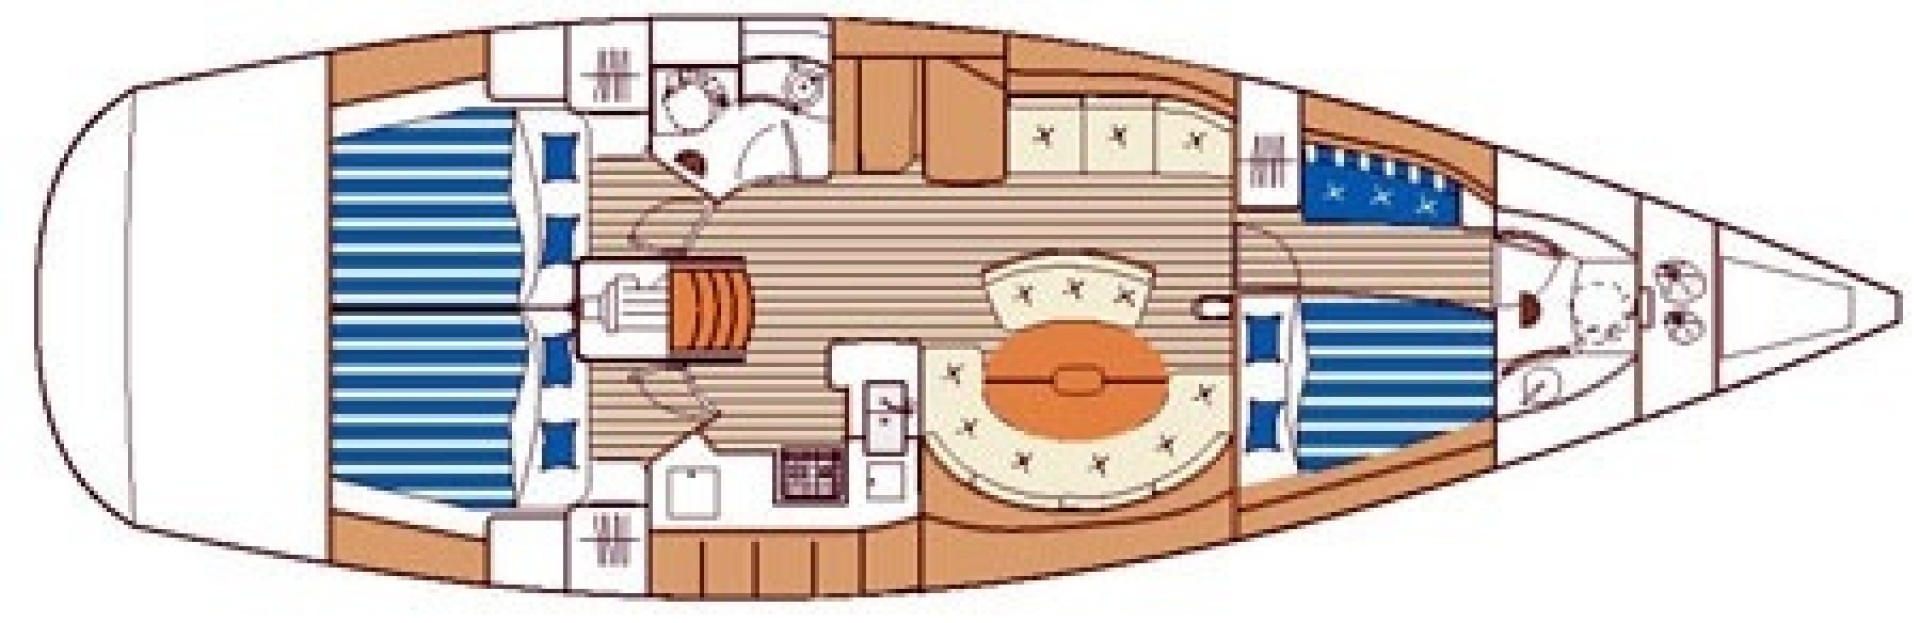 Beneteau-First 47.7 2004 -Portsmouth-Rhode Island-United States-Layout-1551498 | Thumbnail